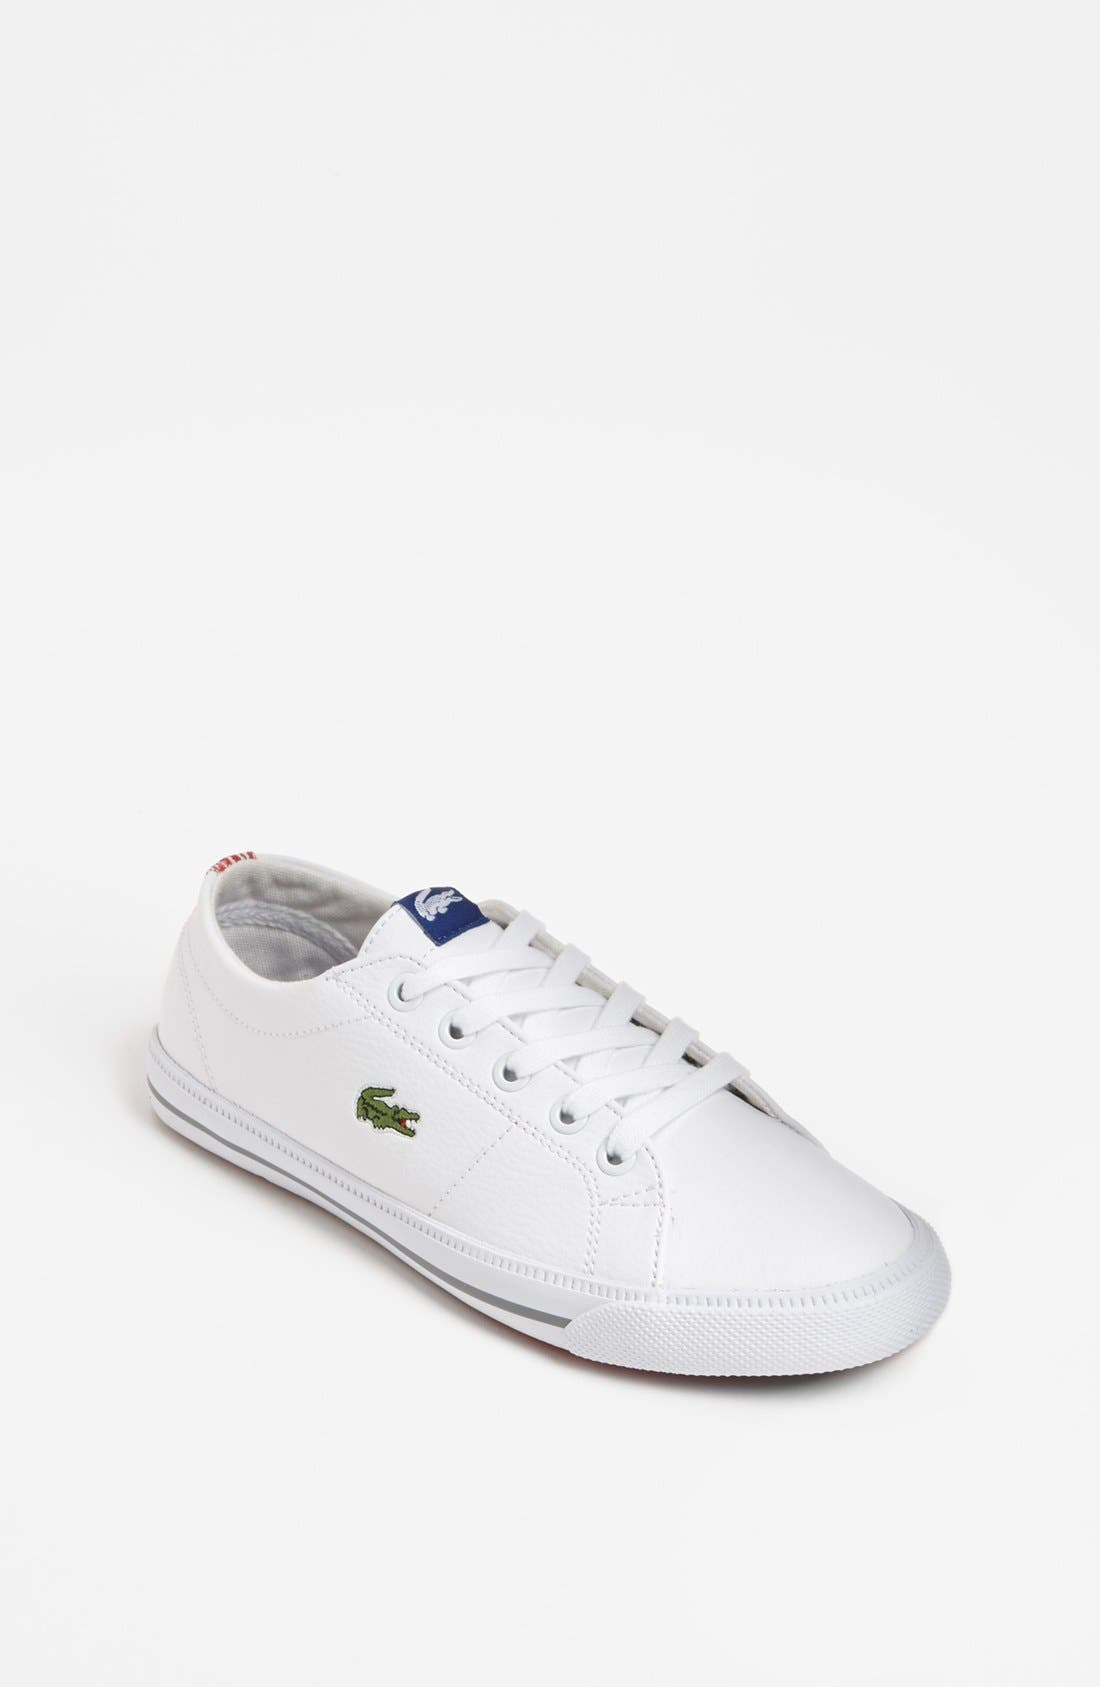 Alternate Image 1 Selected - Lacoste 'Marcel' Sneaker (Toddler & Little Kid)